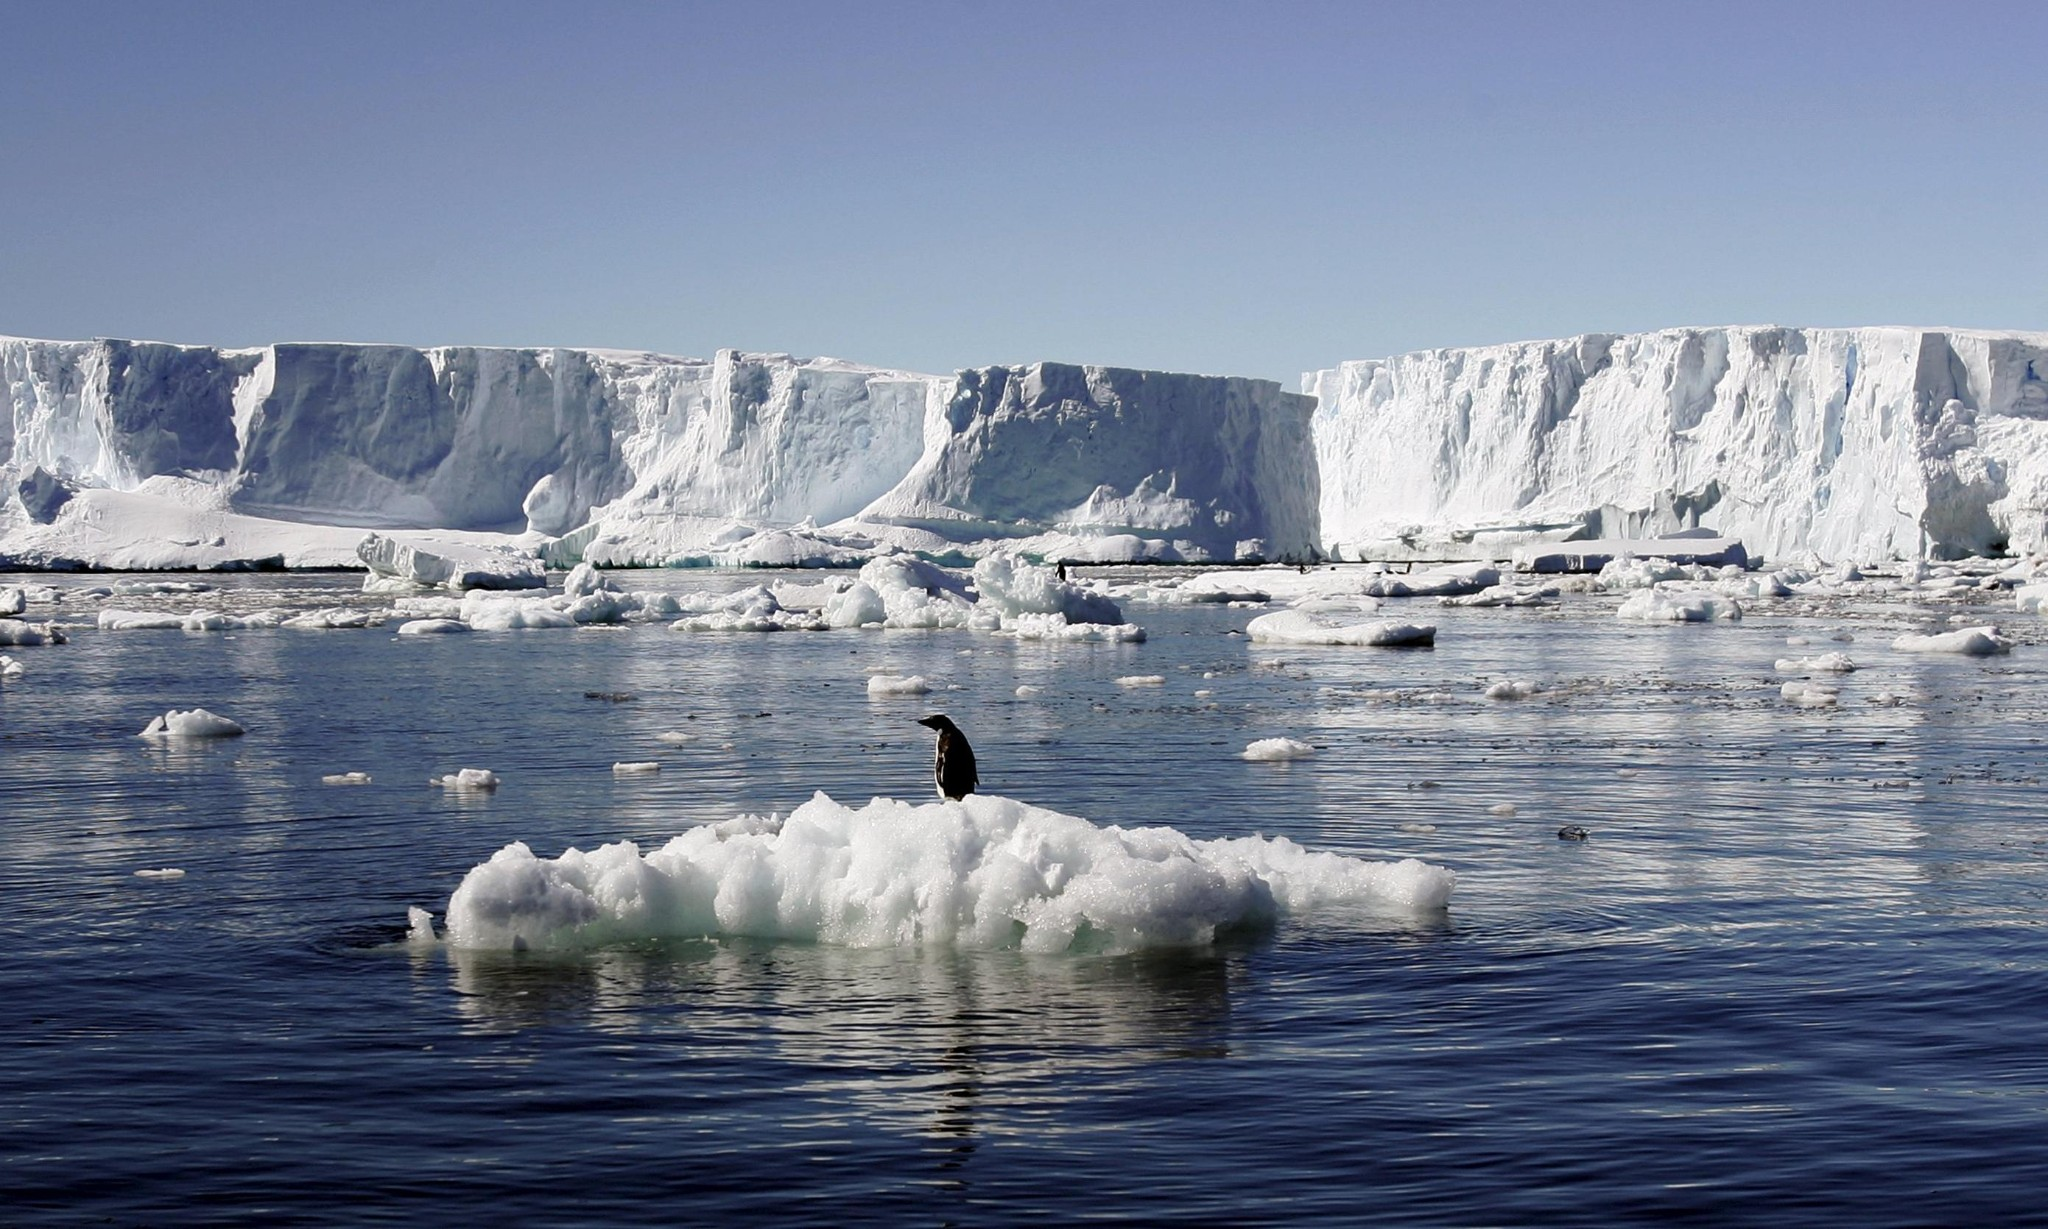 Climate urgency: we've locked in more global warming than people realize